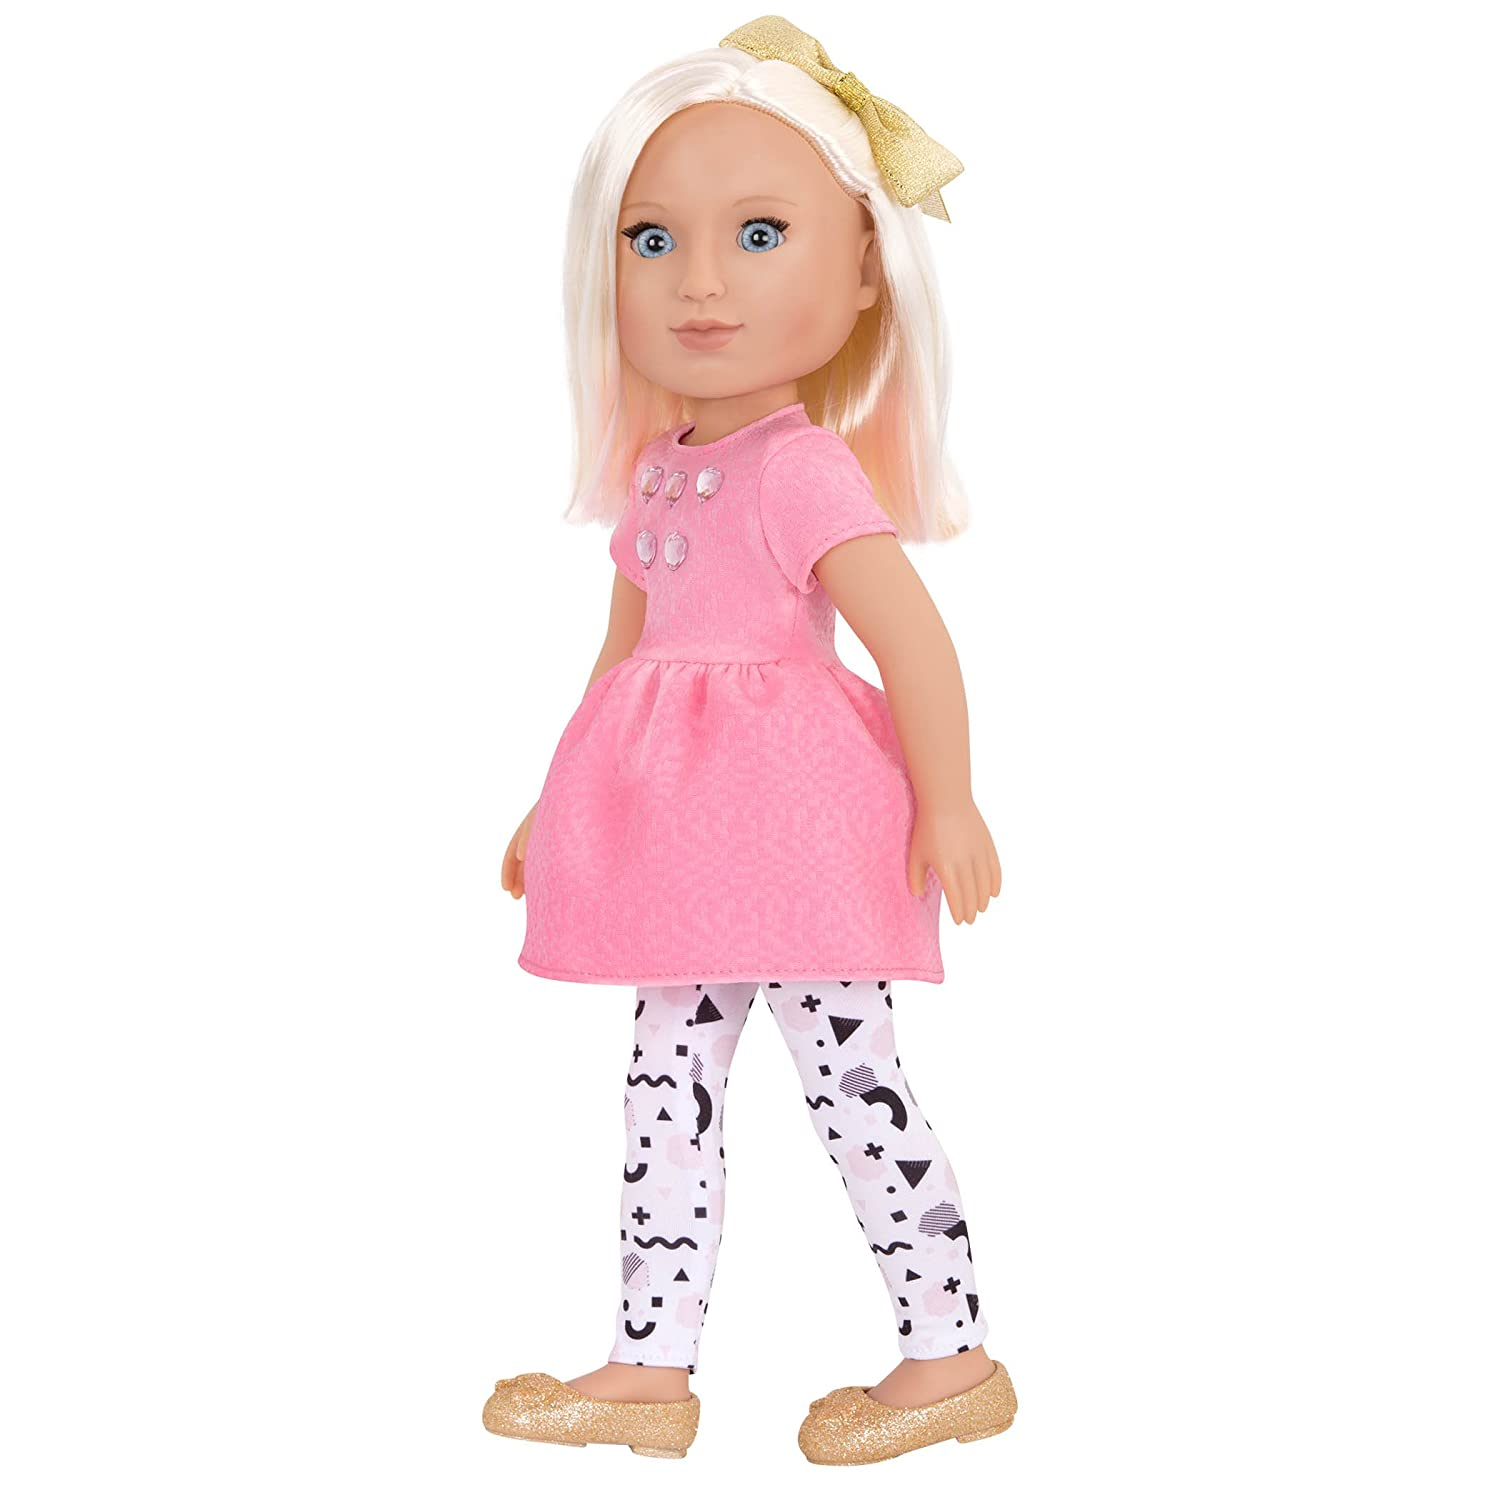 Amazon.com: Glitter Girls by Battat - Elula 14 inch Non Posable Fashion  Doll - Dolls for Girls Age 3 and Up: Toys & Games